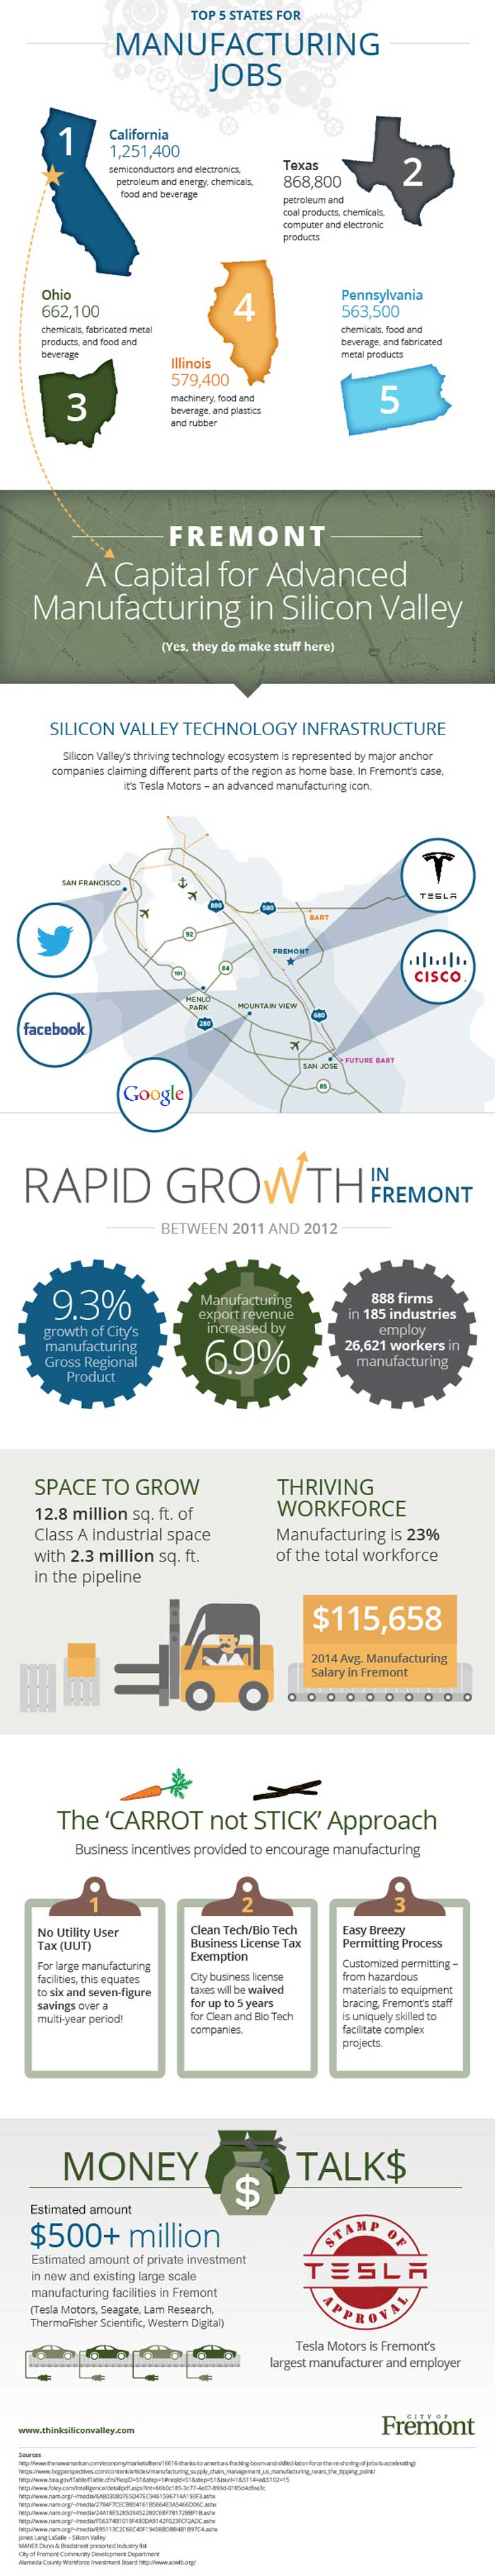 Fremont, CA Commercial Real Estate Services. Contact The Ivy Group to learn about the Rise of Fremont's Innovation District and learn how we can help you solve all your real estate challenges.